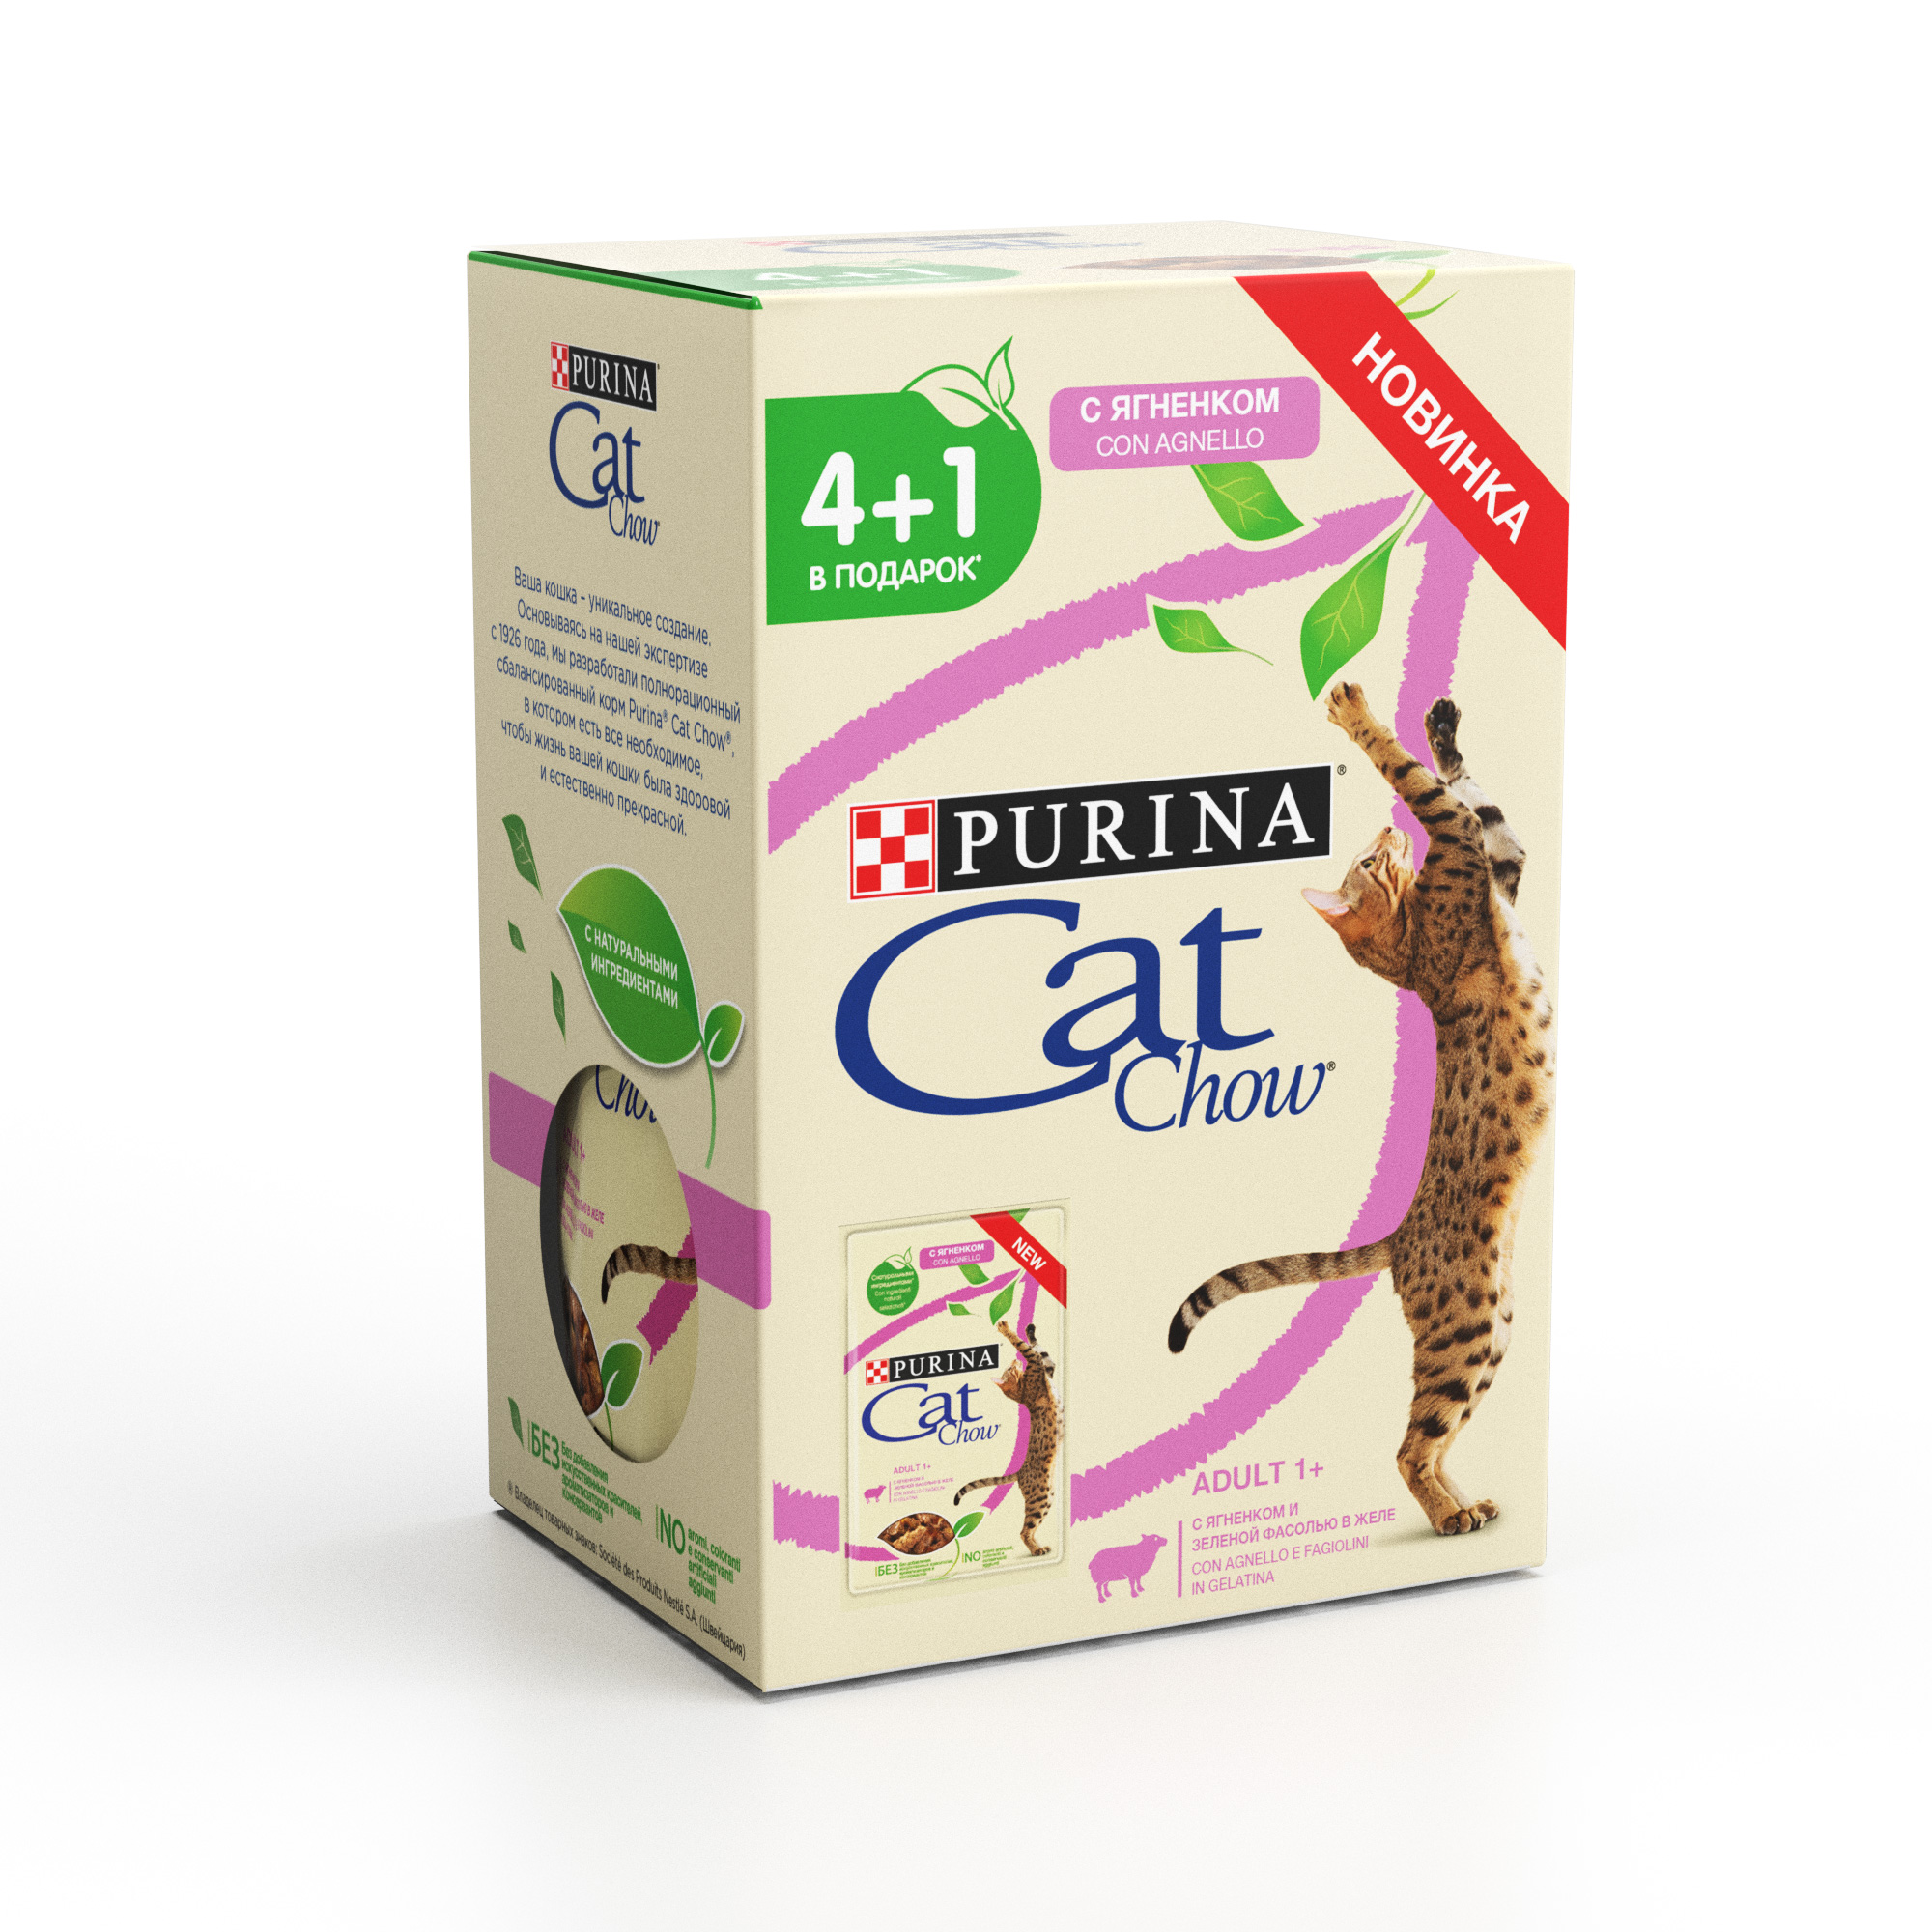 Promopak set: Cat Chow Wet Feed for Adult Cats with Lamb and Green Beans, 60 pouch (12 x (4 + 1)) x 85 g потребительские товары oem neato 4 x 4 x neato botvac 70 75 80 85 silicone blades and brushes for neato botvac